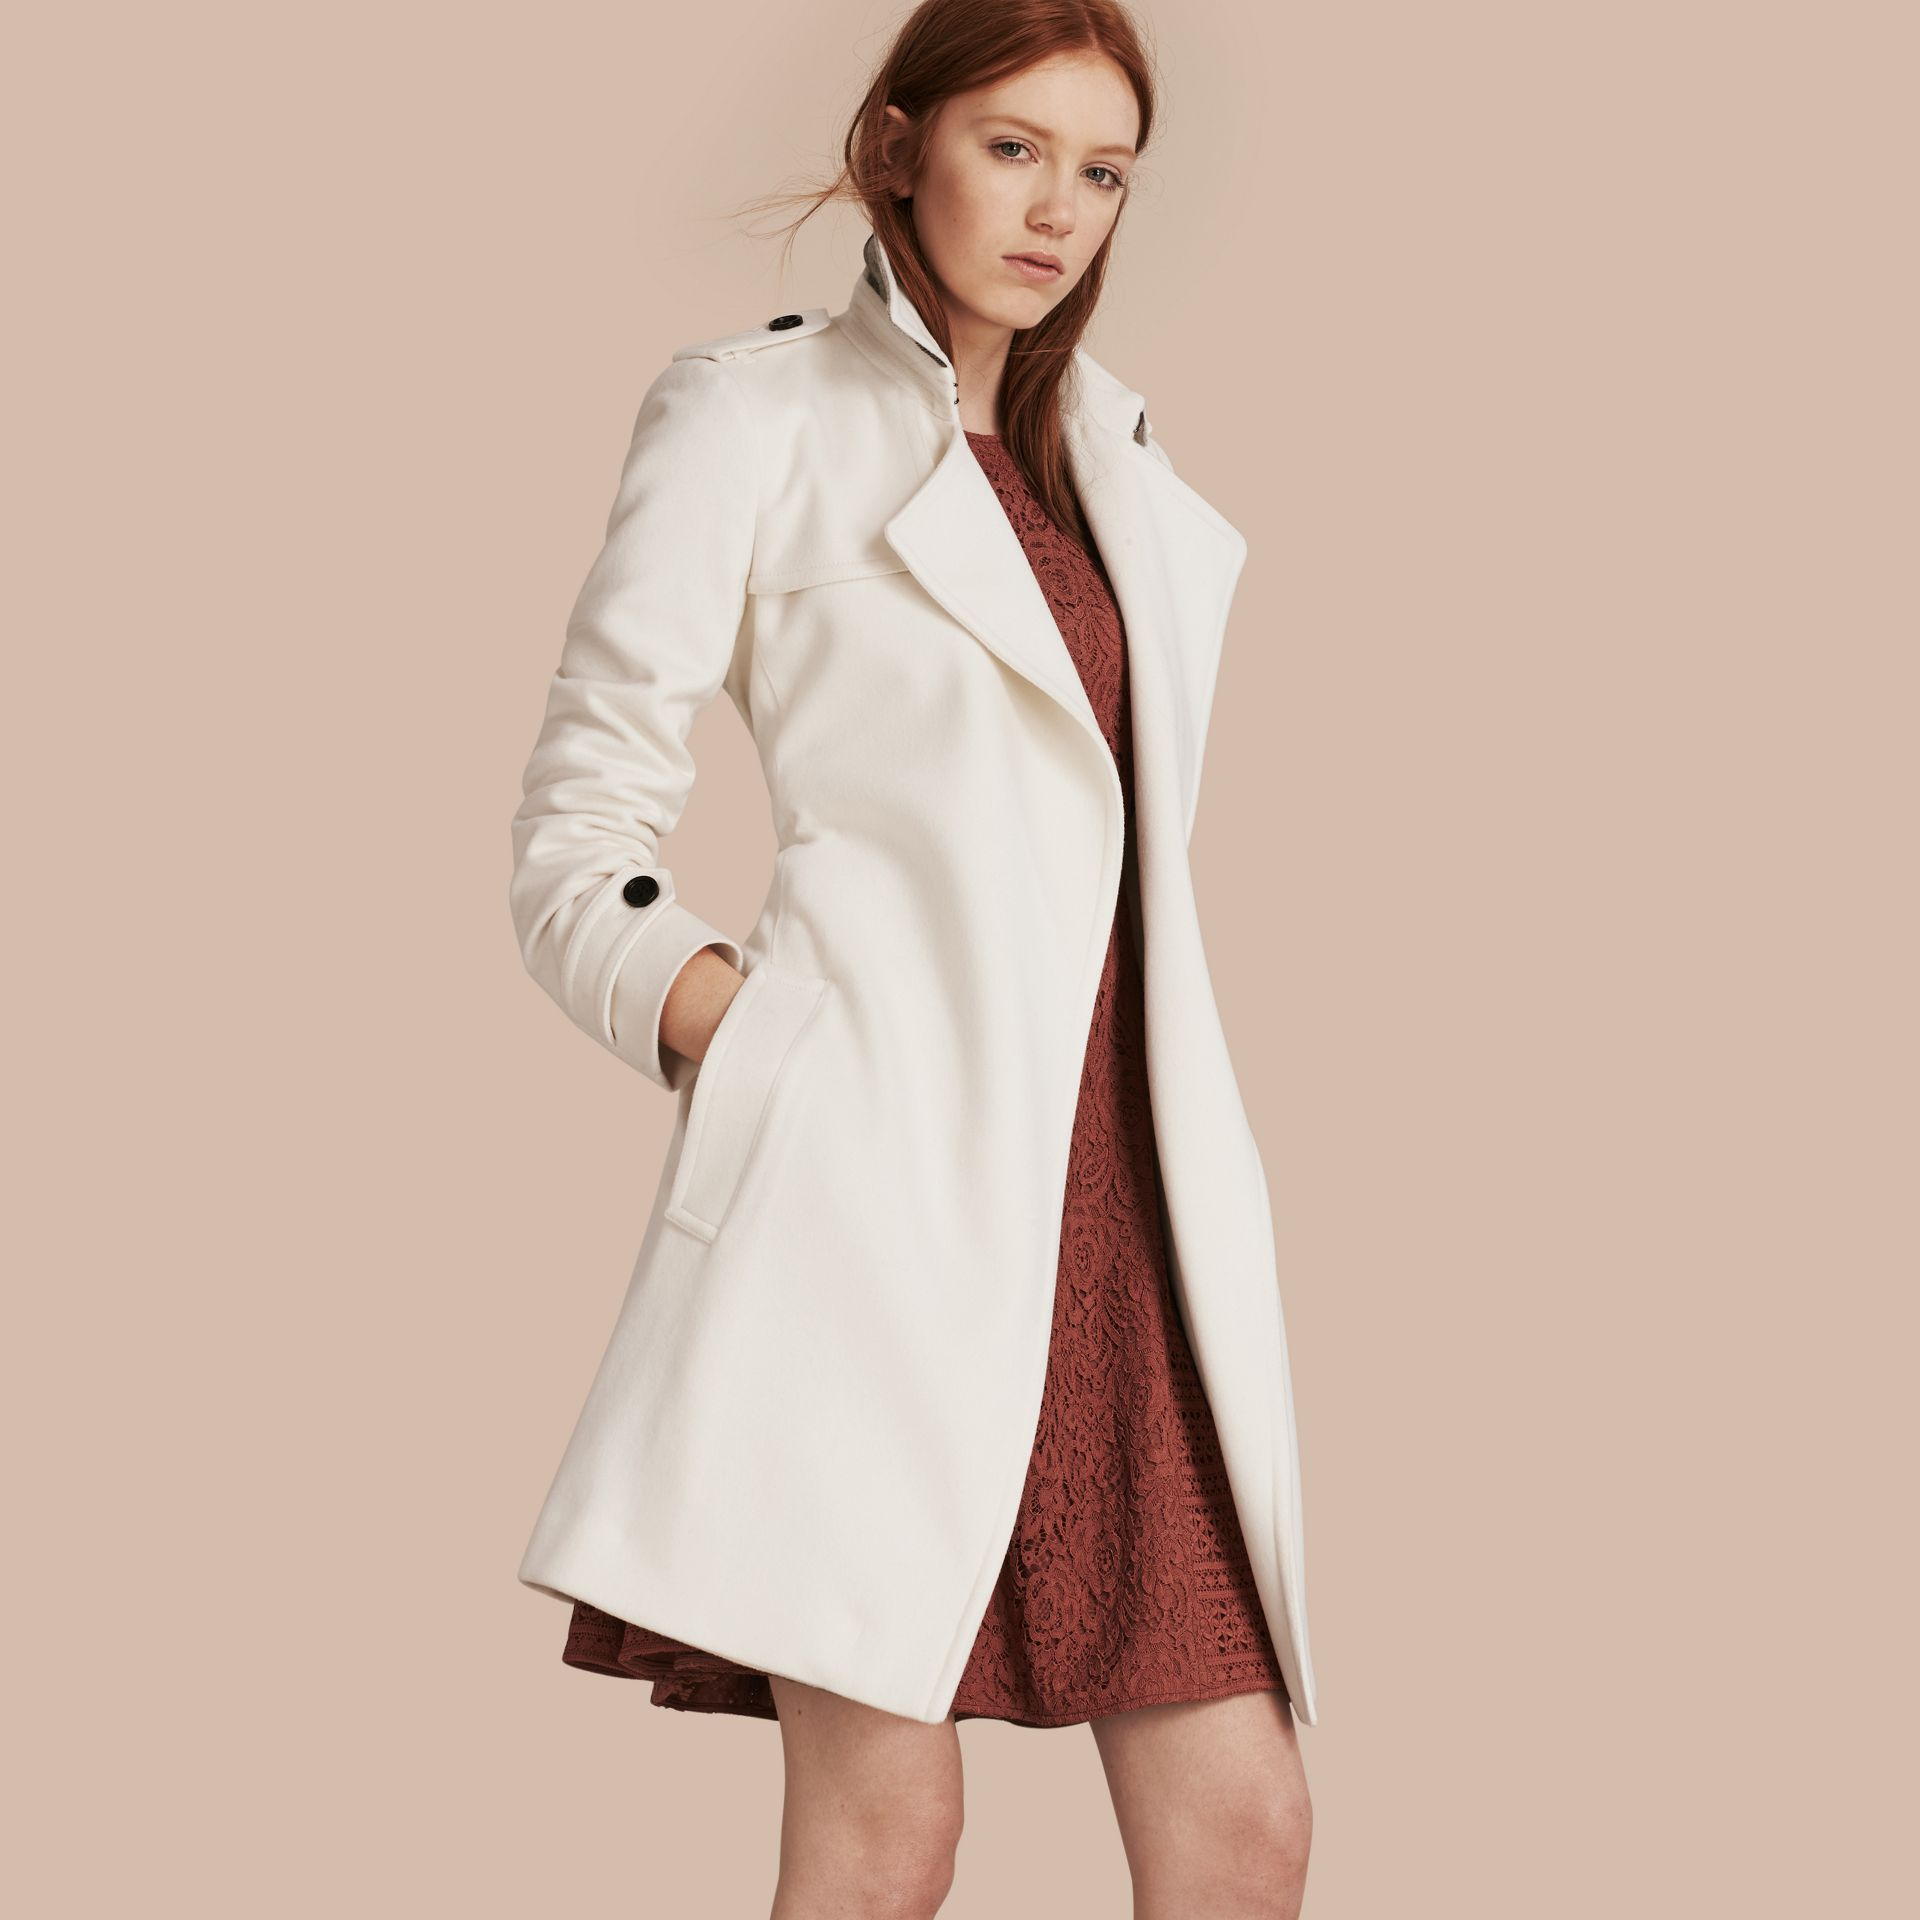 Blanc Trench-coat portefeuille en cachemire Blanc - photo de la galerie 1